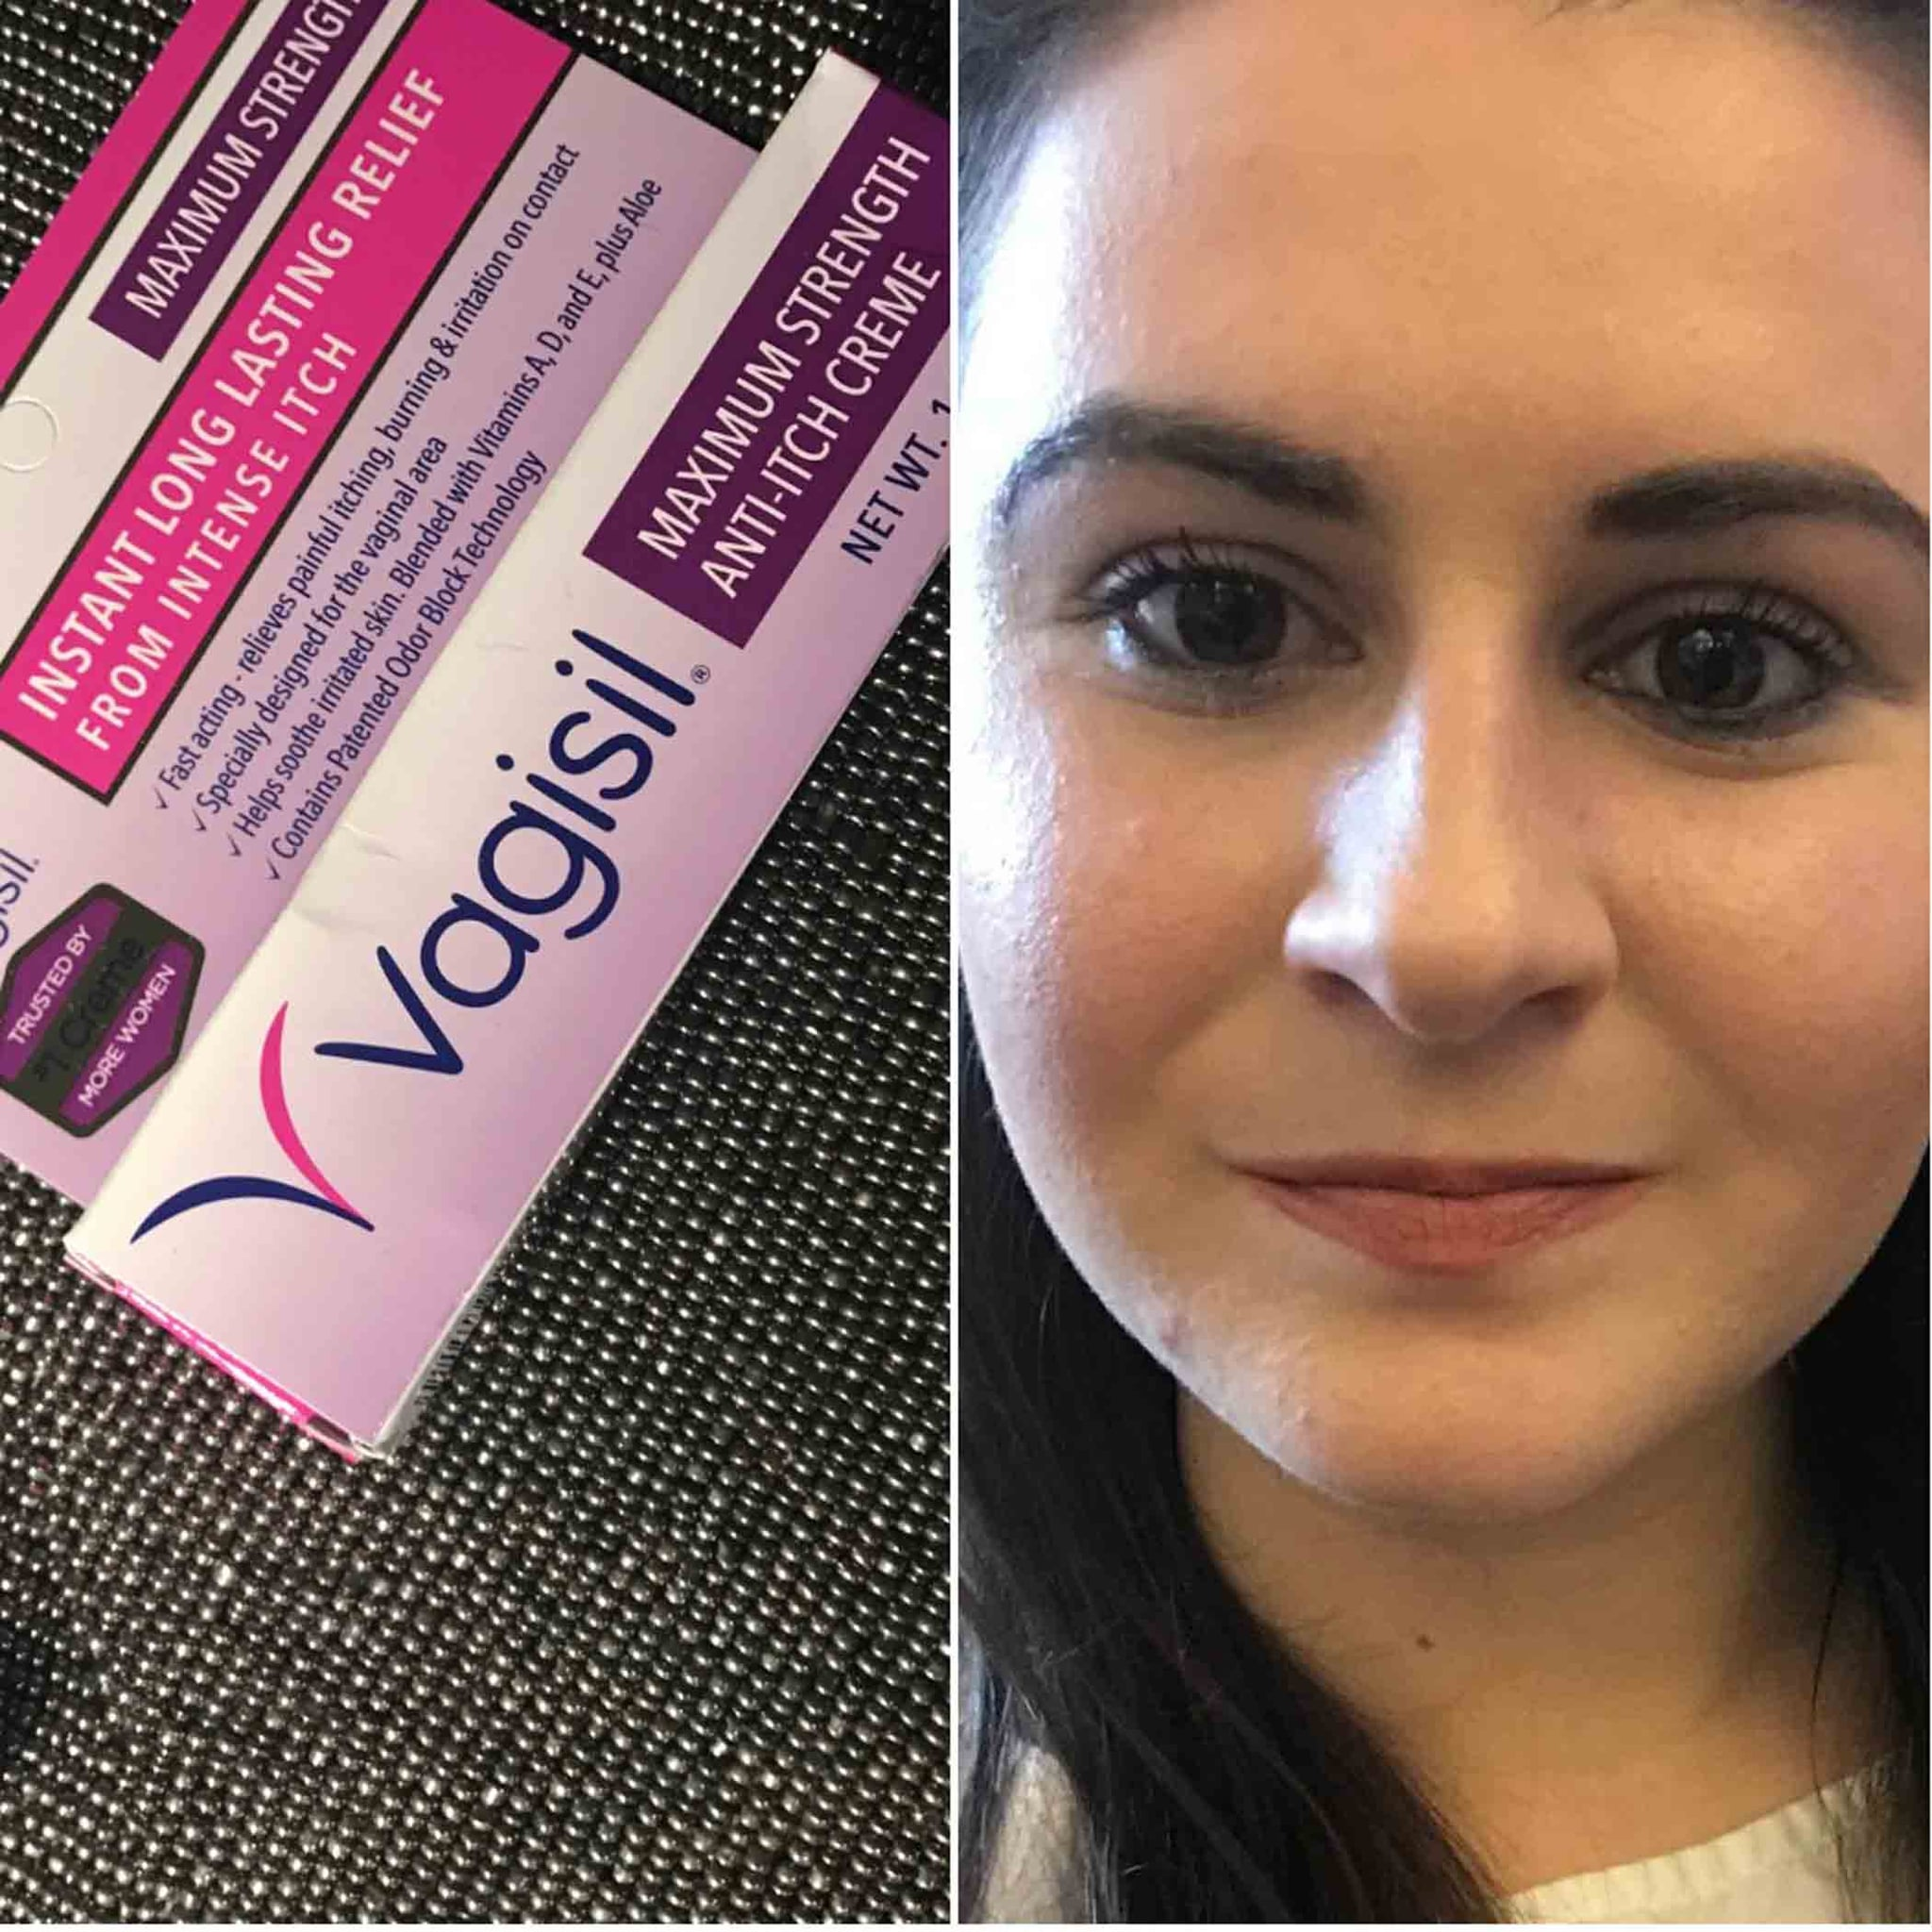 What Happens If You Put Vagisil on Your Face?